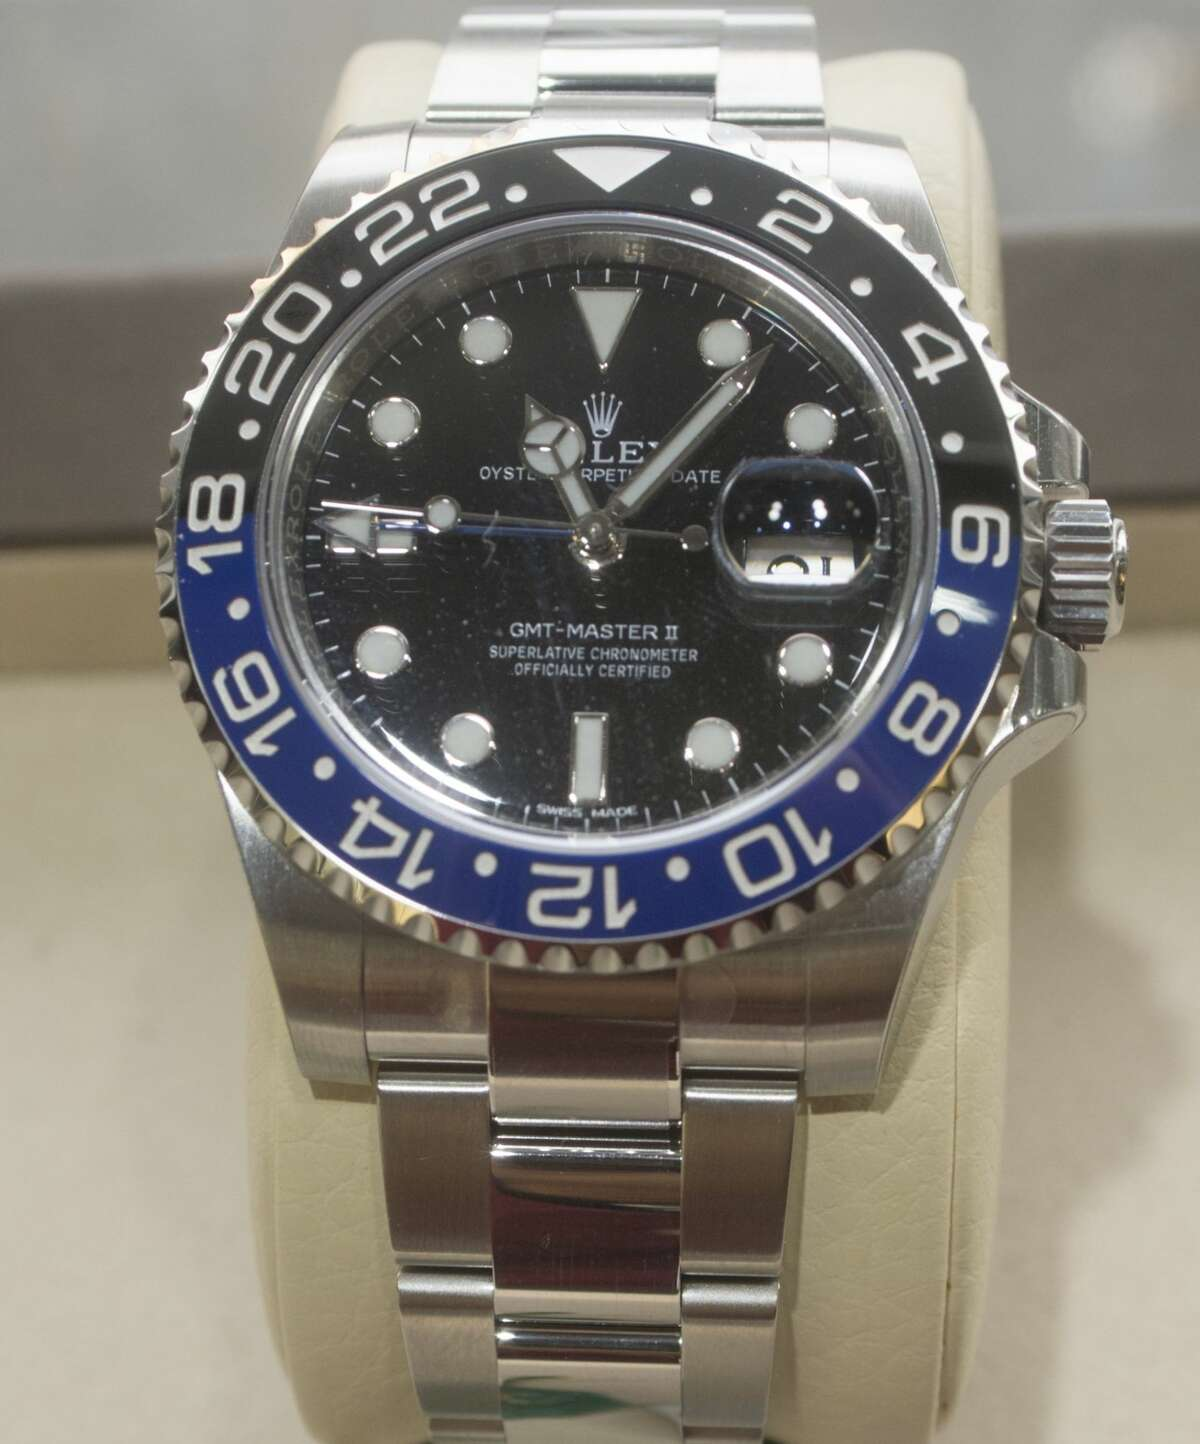 The Rolex GMT-Master II is the choice for globetrotters. Its 24-hour bezel makes it easy to find the time in other time zones. This version is stainless steel and comes with a black and blue ceramic bezel. Photographed Dec. 14, 2016, at Cristiani's Jewelers in Midland. Tim Fischer/Reporter-Telegram